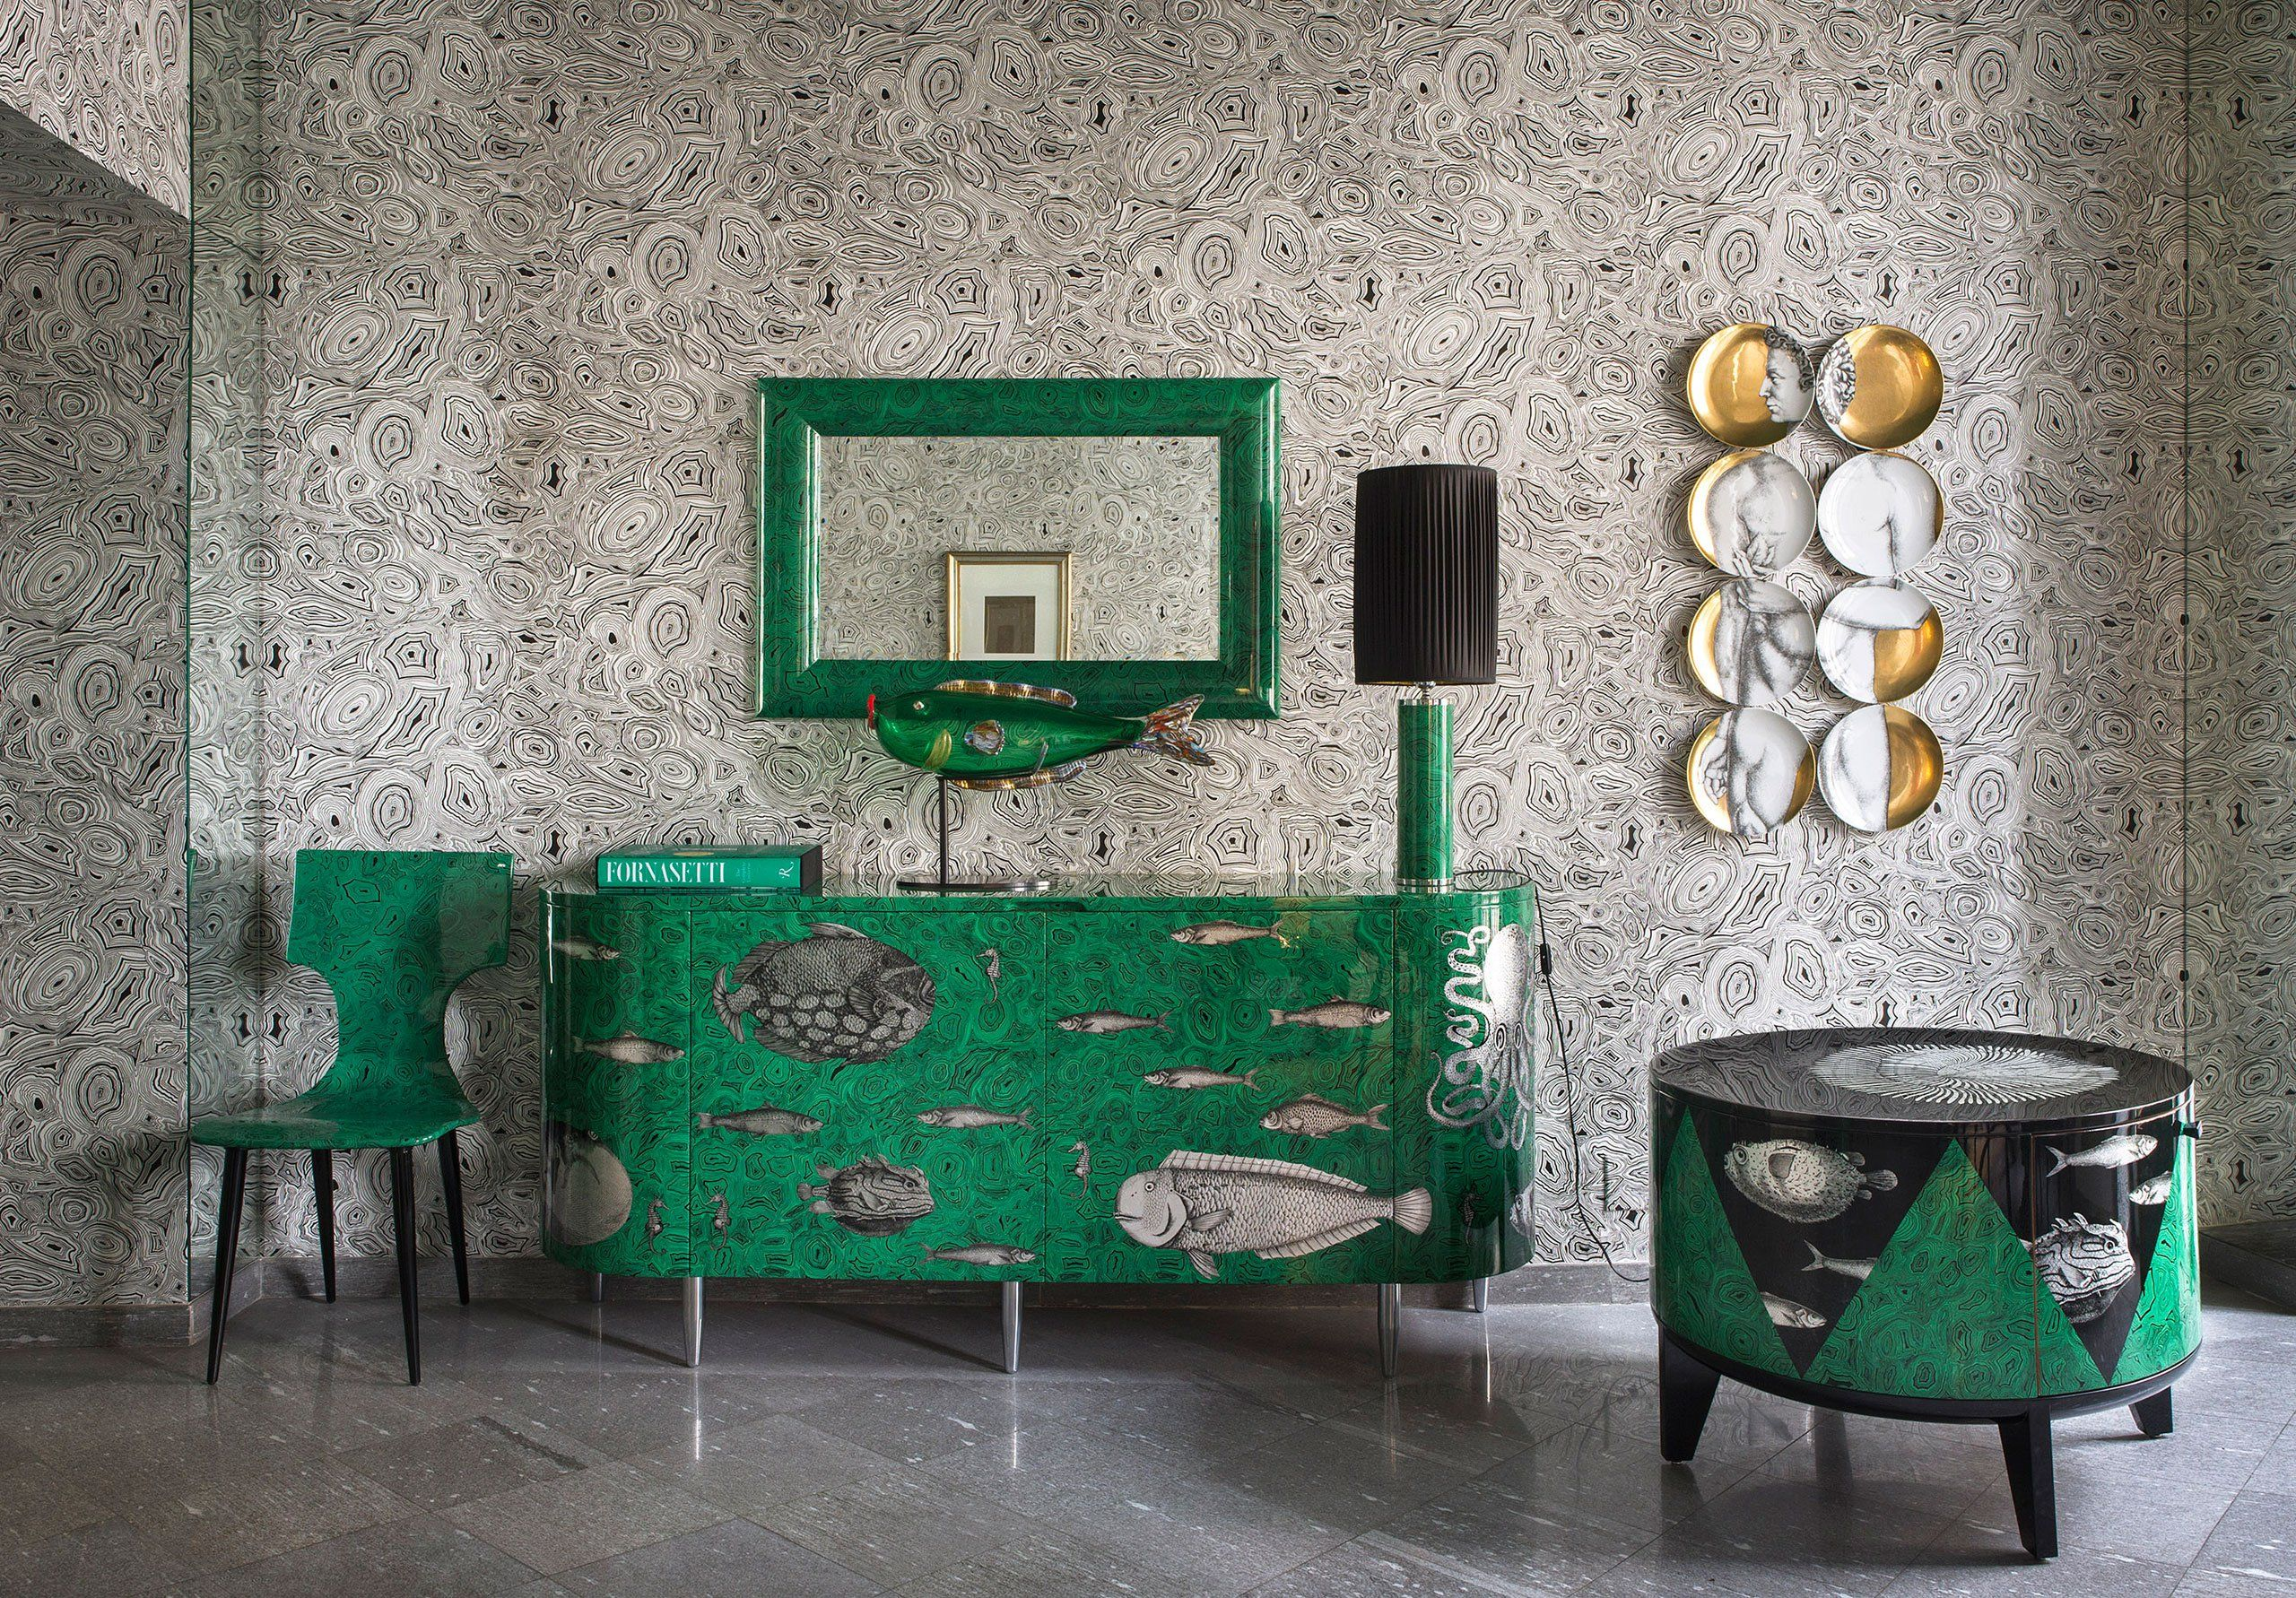 Best of milan design week 2017 the new cilindro container series by fornasetti crazy design - Fornasetti mobili ...